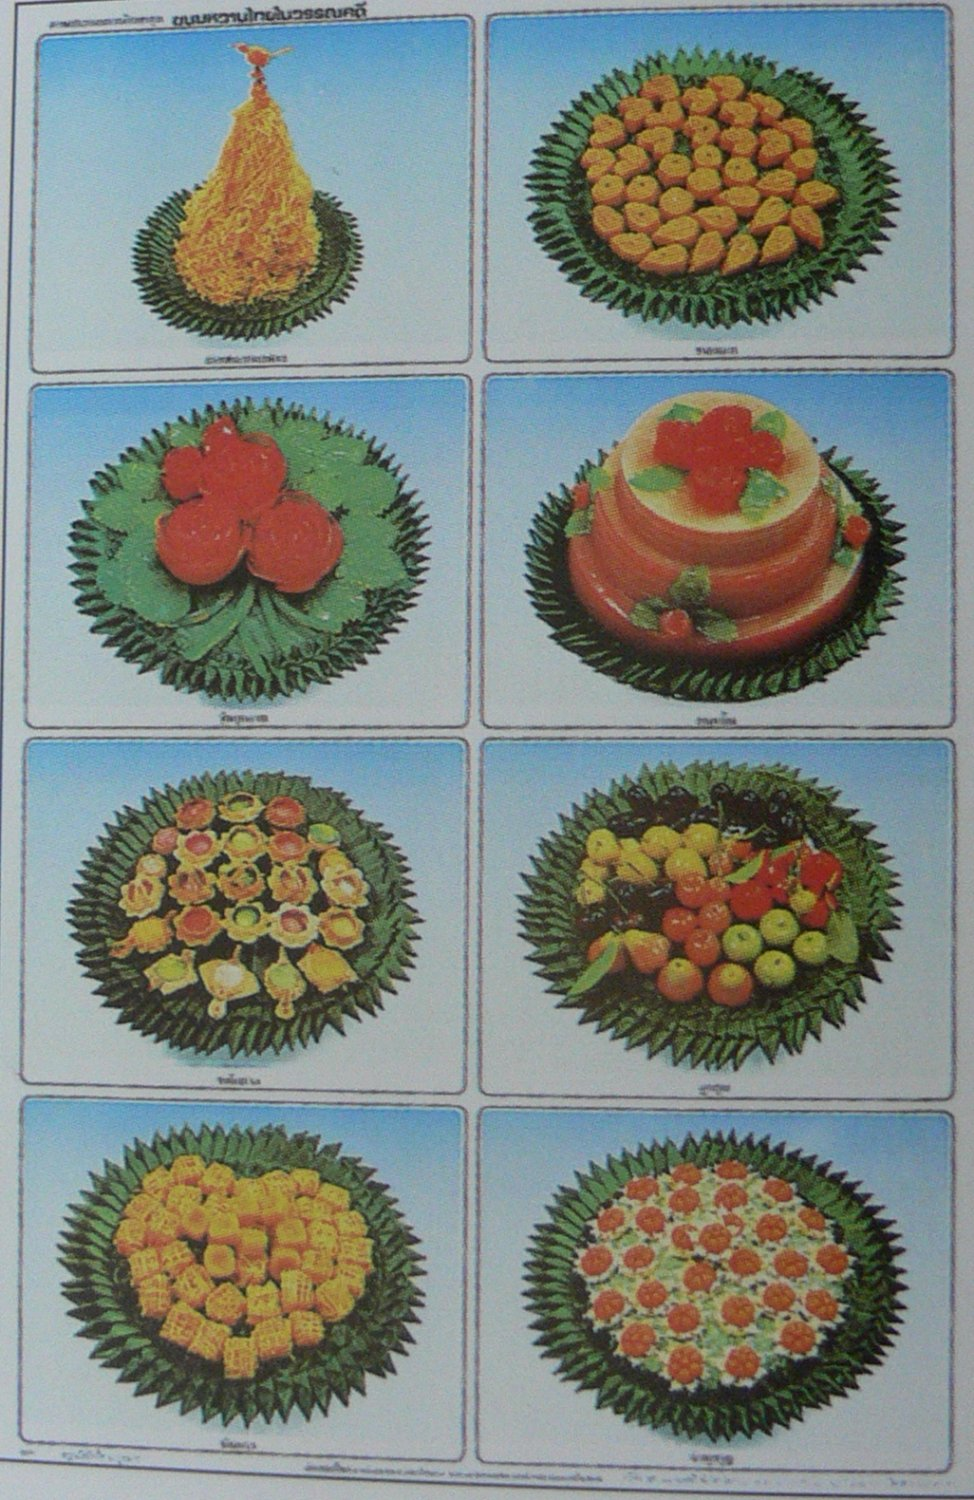 Thailand Thai Tradition Literature Style Delicious Yummy Dessert Poster Collection Christmas Gift